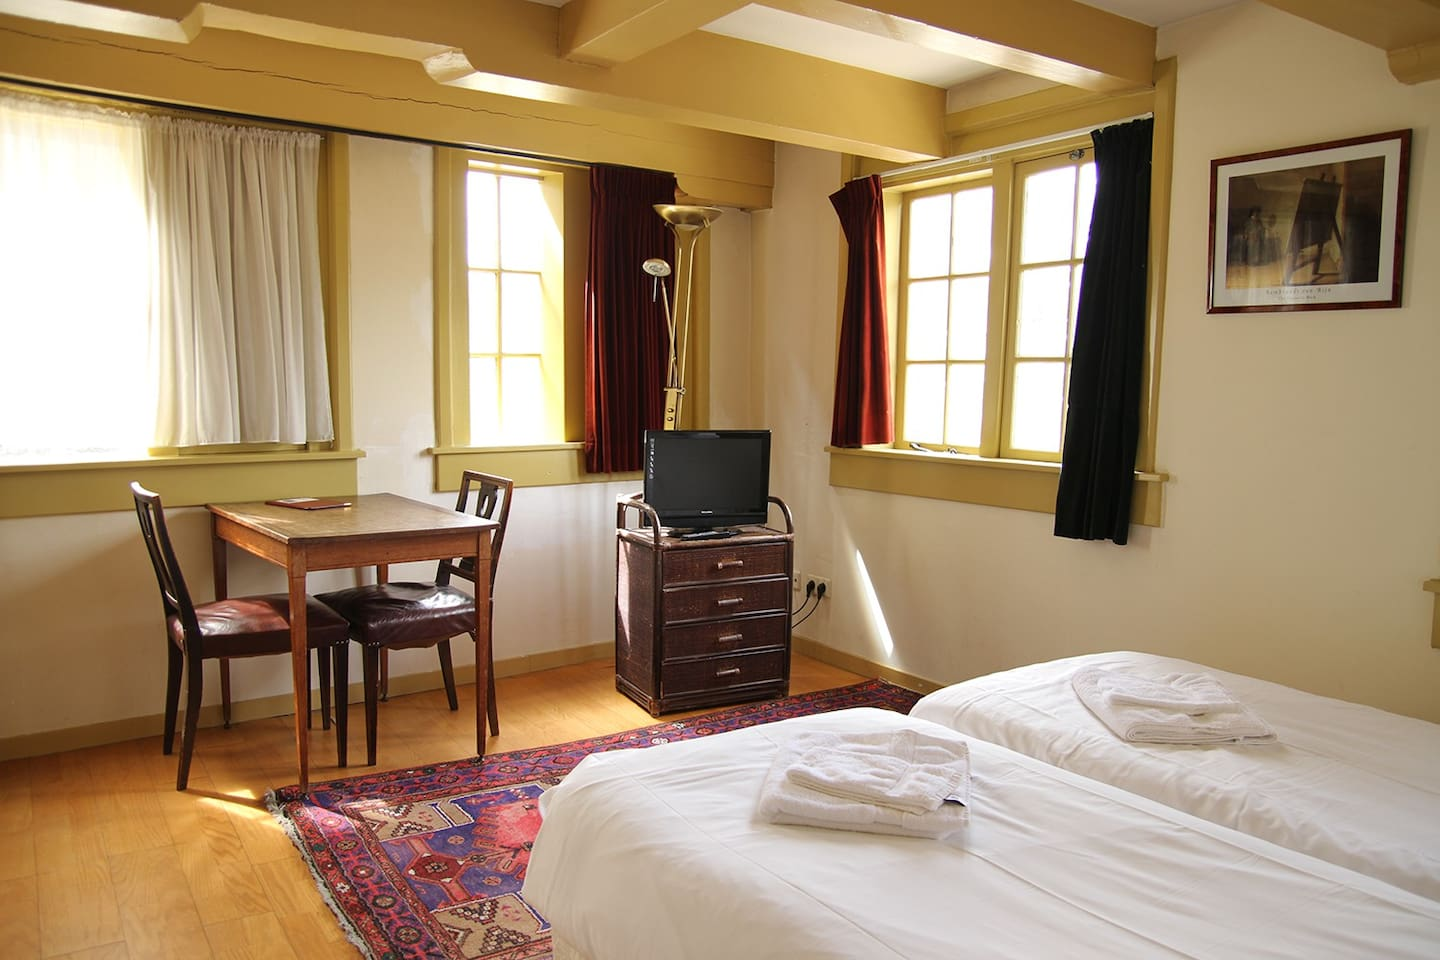 The room has two comfy single beds.